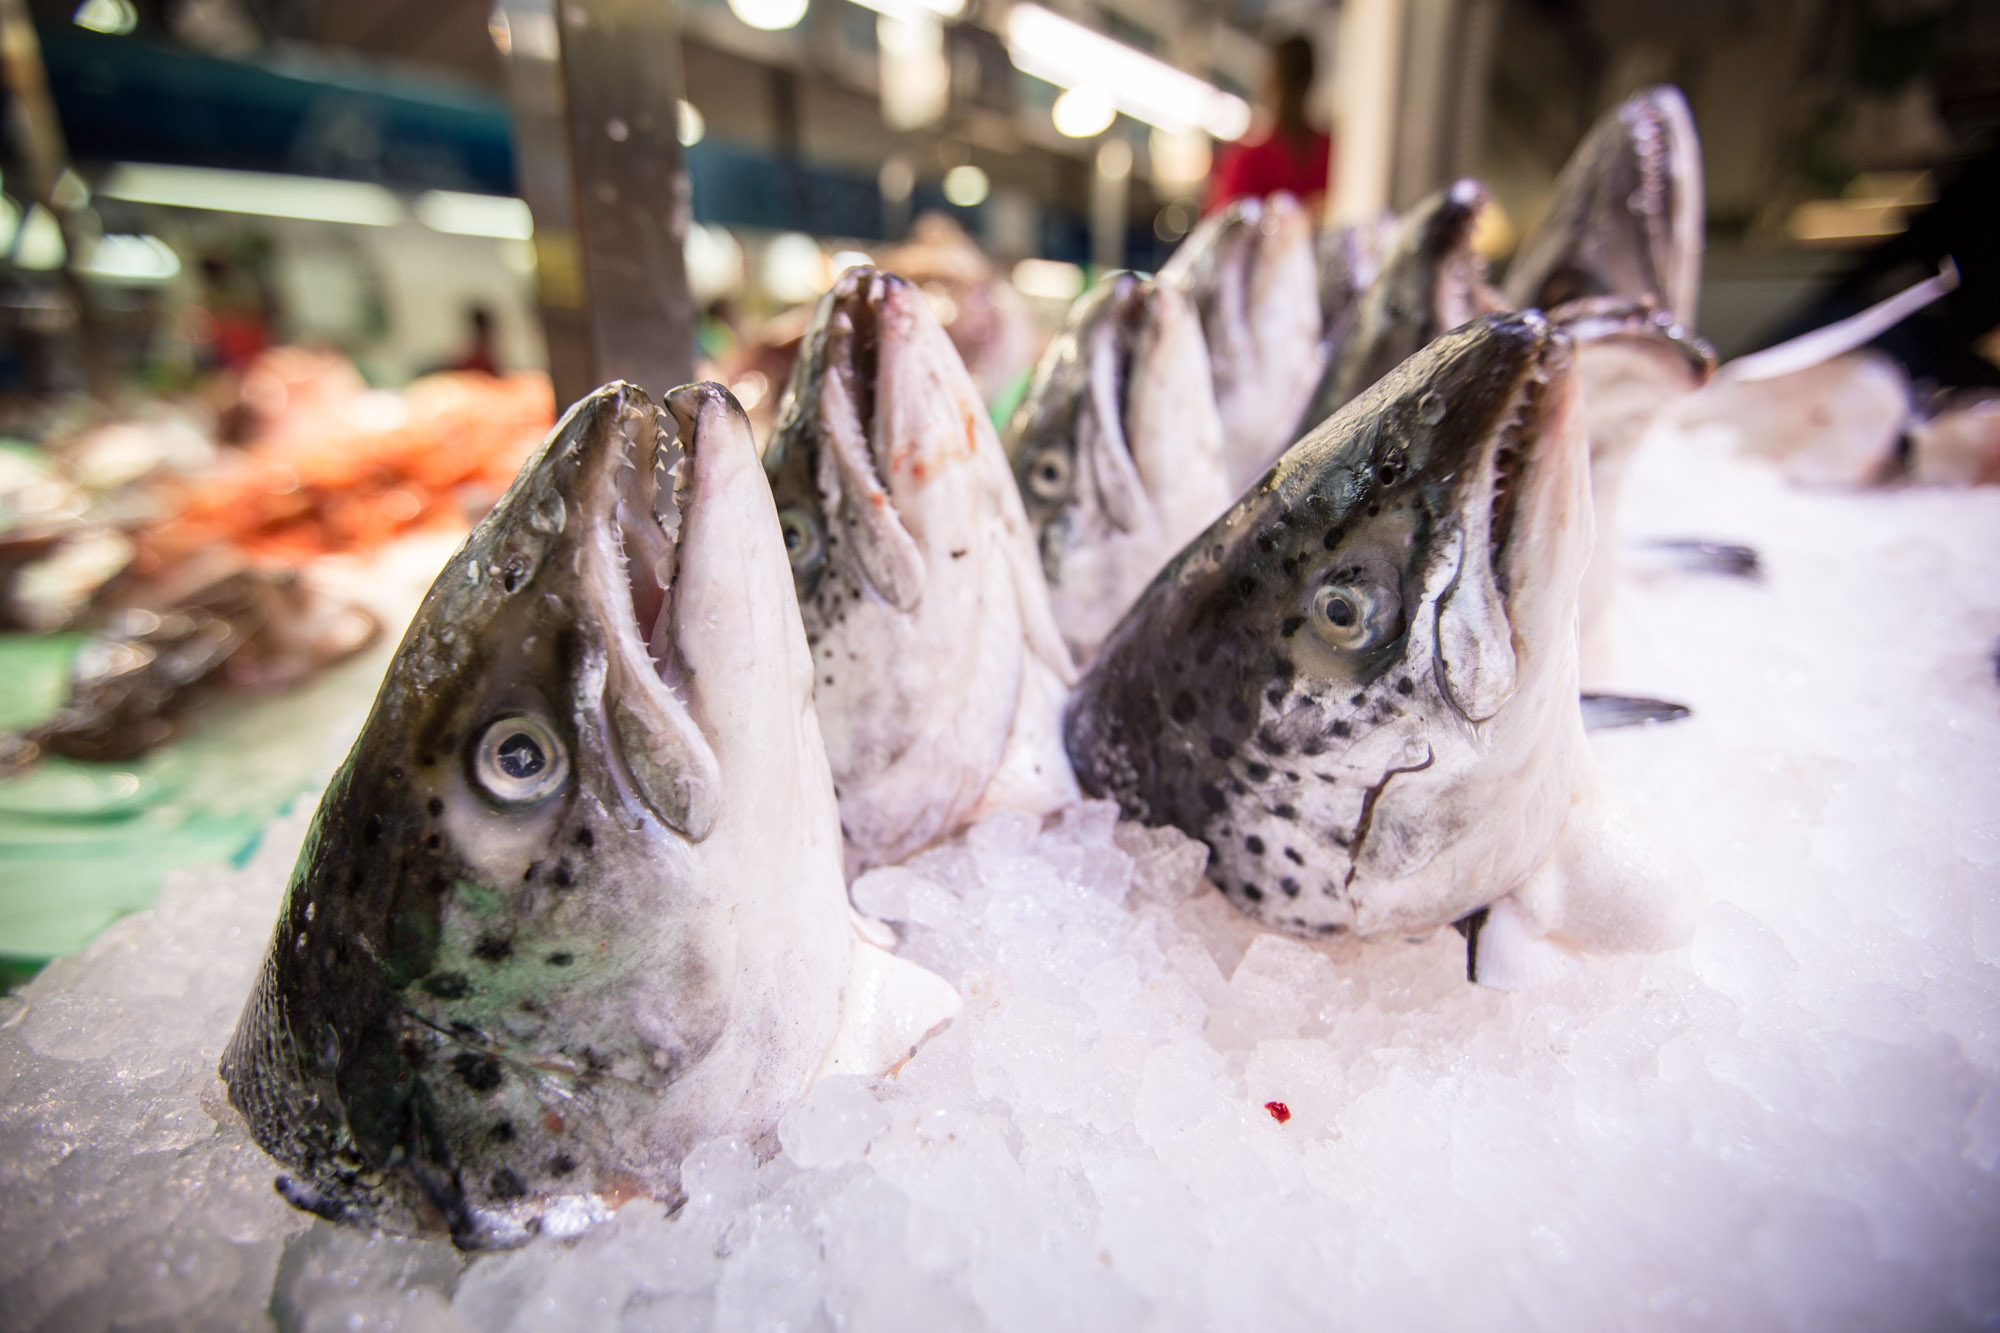 Fish from Mercat del Lleo